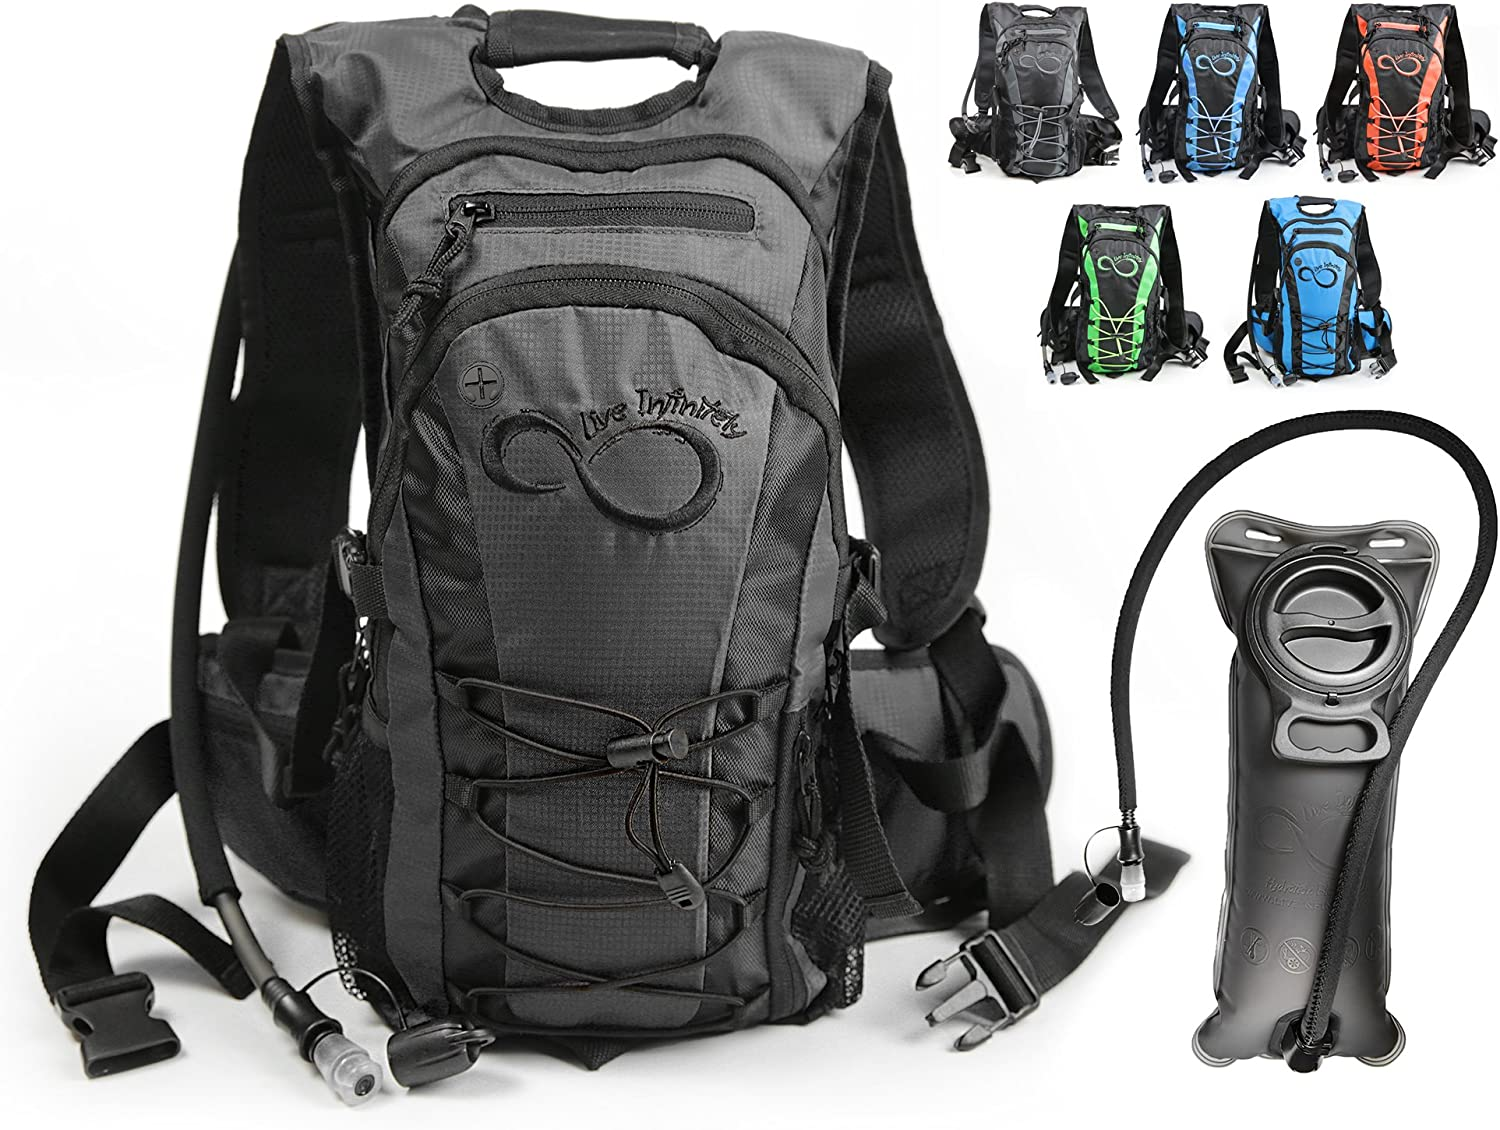 Live Infinitely Hydration Backpack 2L 3L TPU Leak Proof Water Bladder- 600D Polyester -Adjustable Padded Shoulder, Chest Waist Straps- Silicon Bite Tip Shut Off Valve- Daypack Cycling Hiking